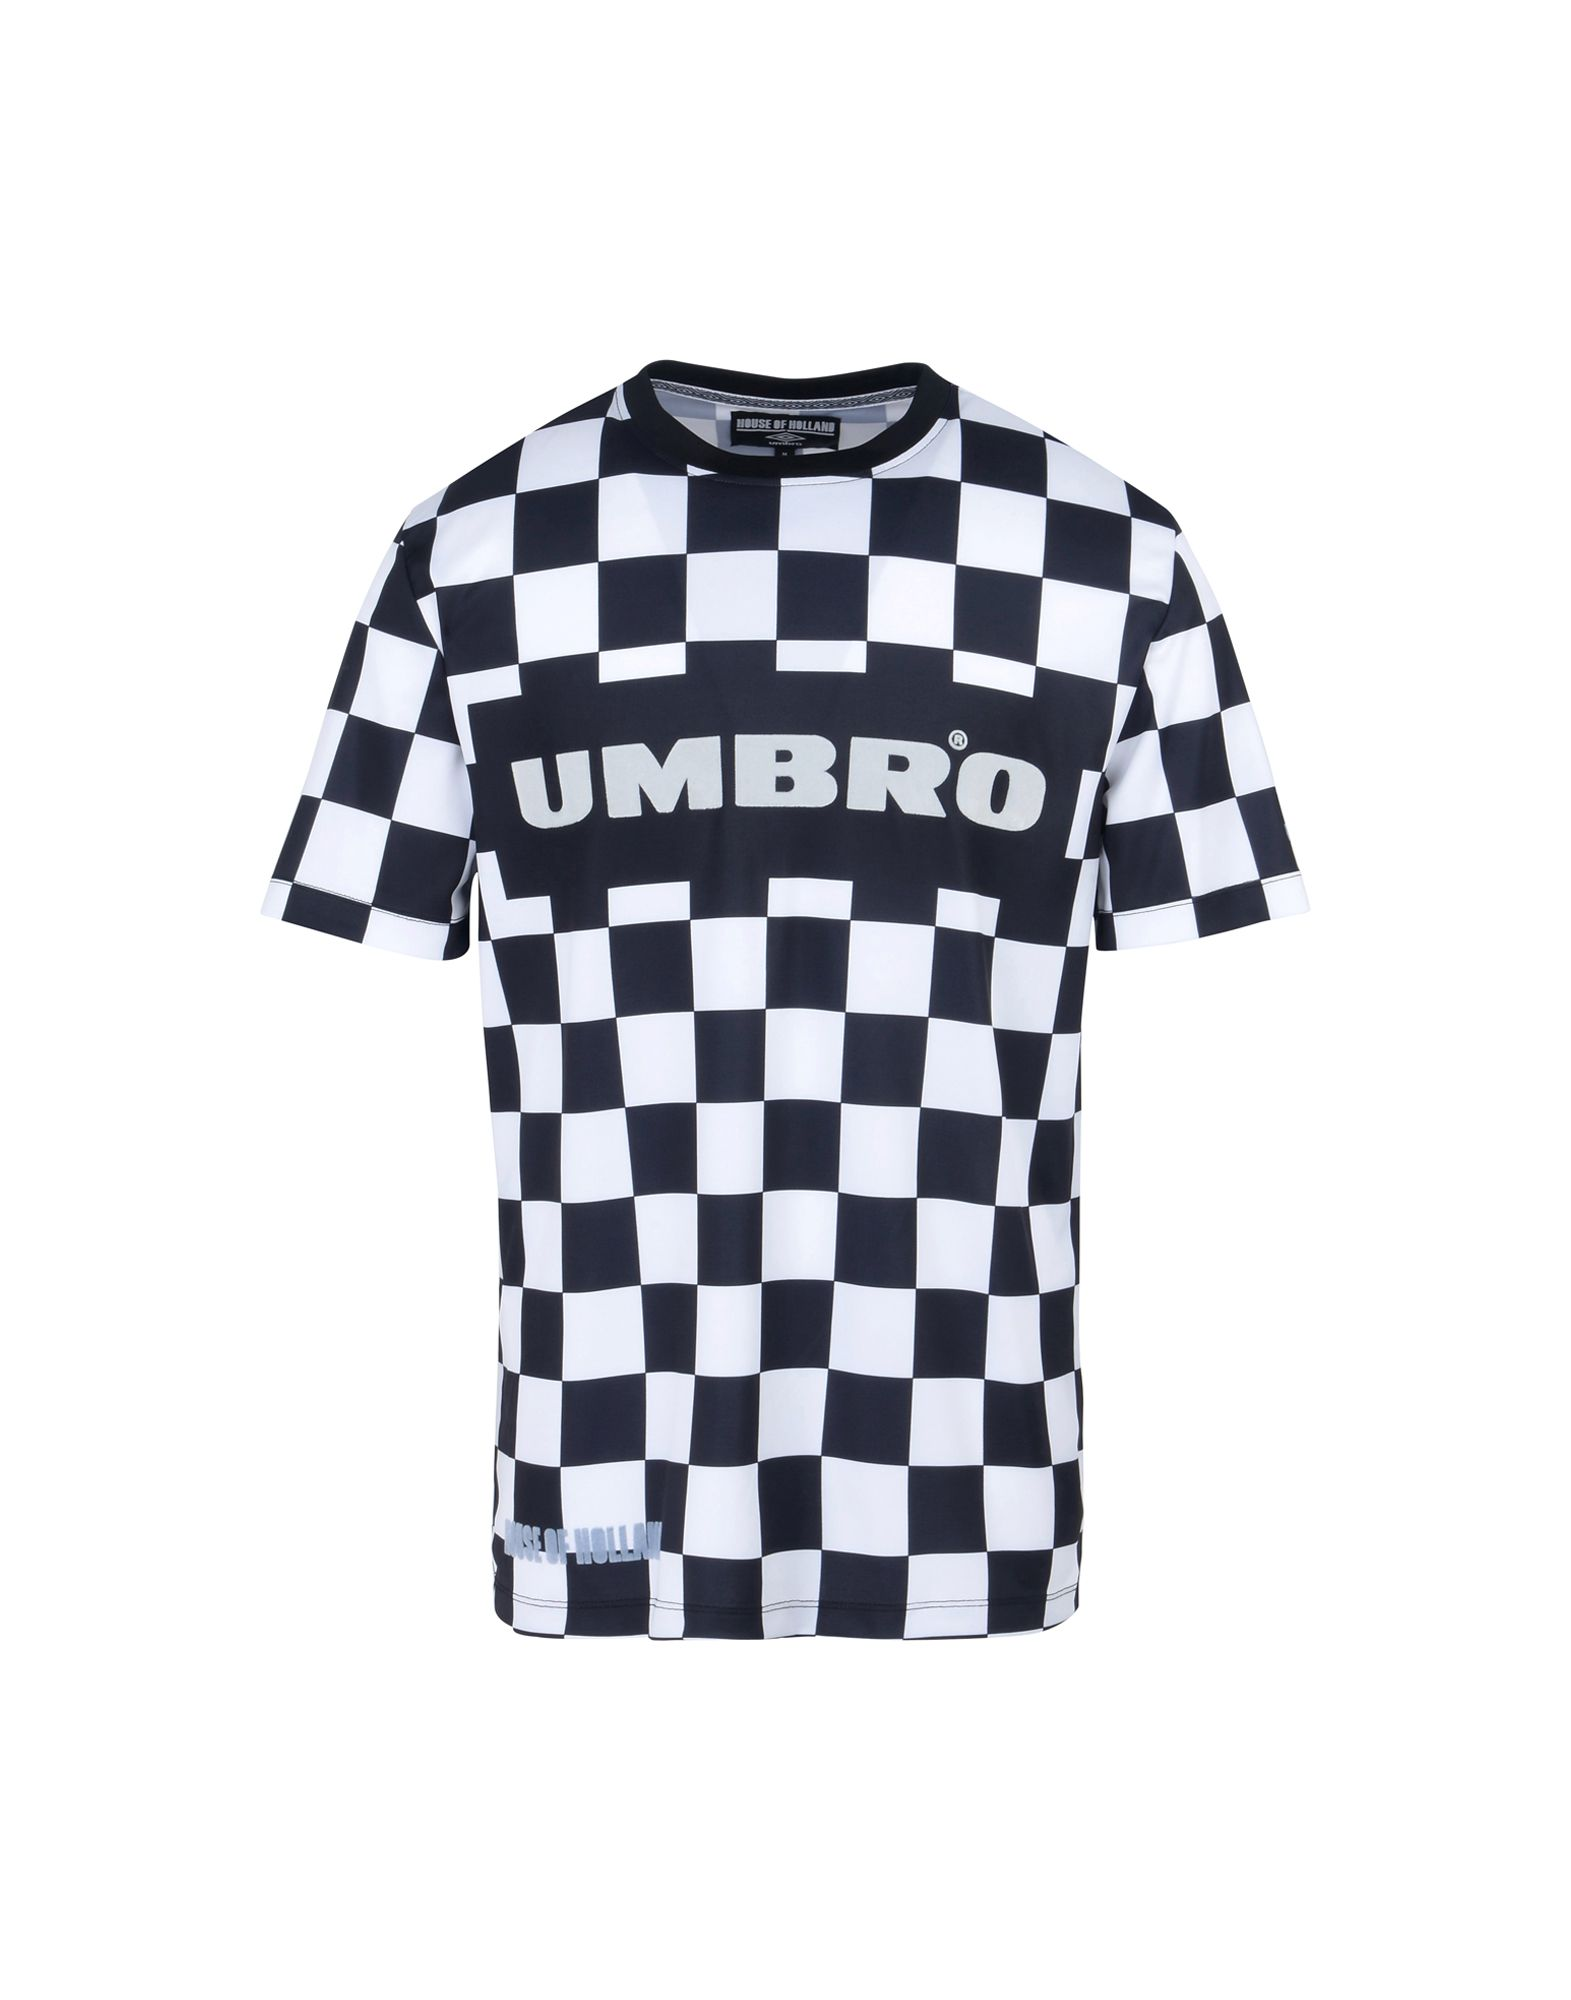 UMBRO x HOUSE OF HOLLAND Футболка [zob] guarantee new original authentic omron omron photoelectric switch e3s cl1 2m